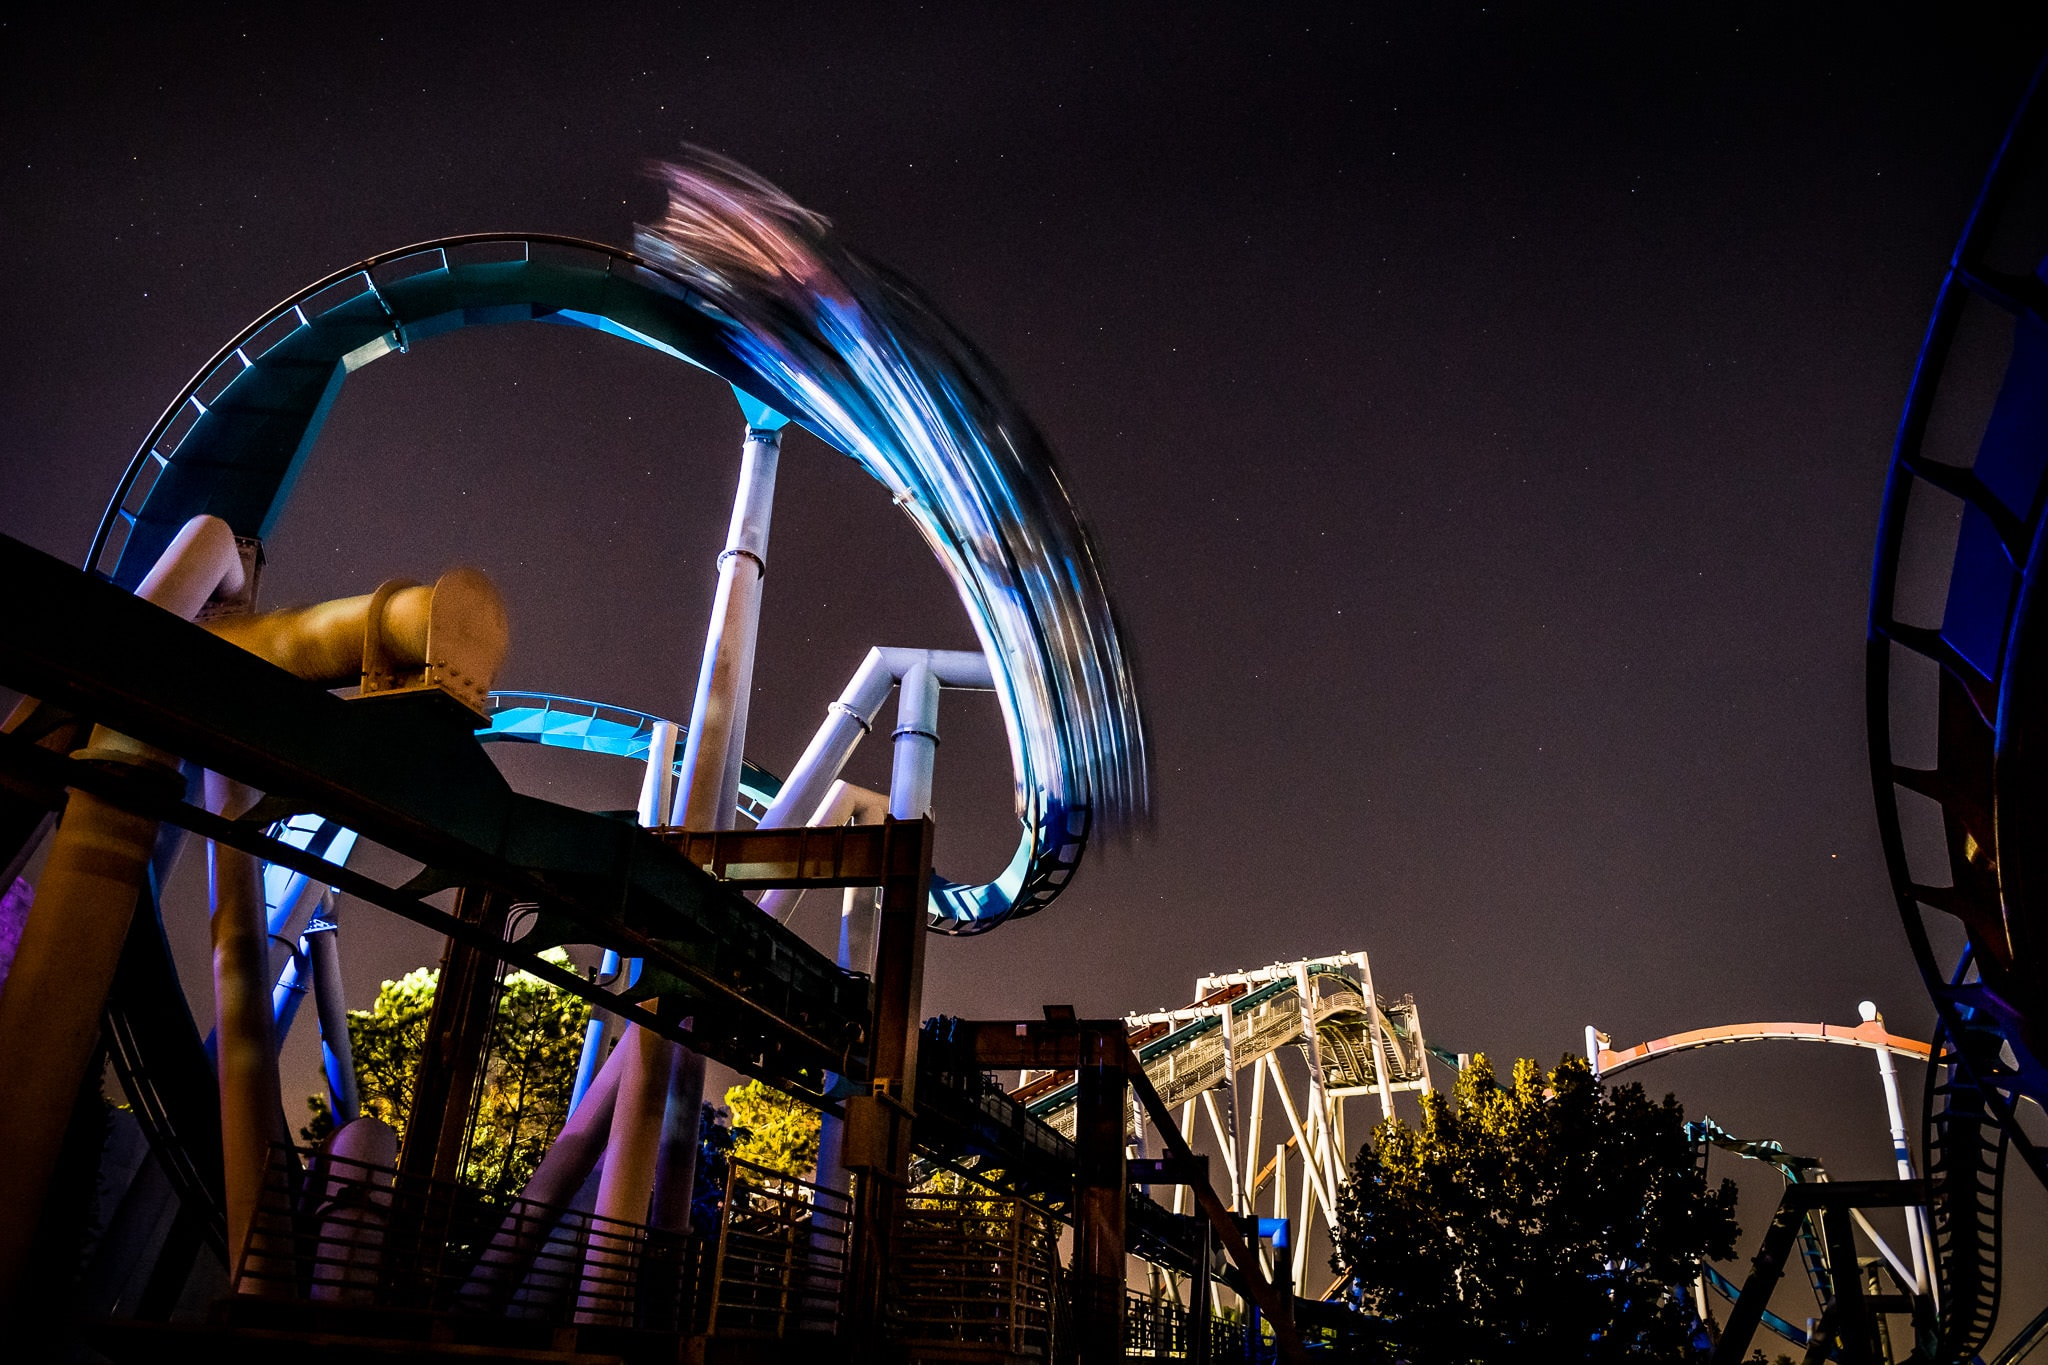 Long exposure photo of corporate event employees riding a rollercoaster